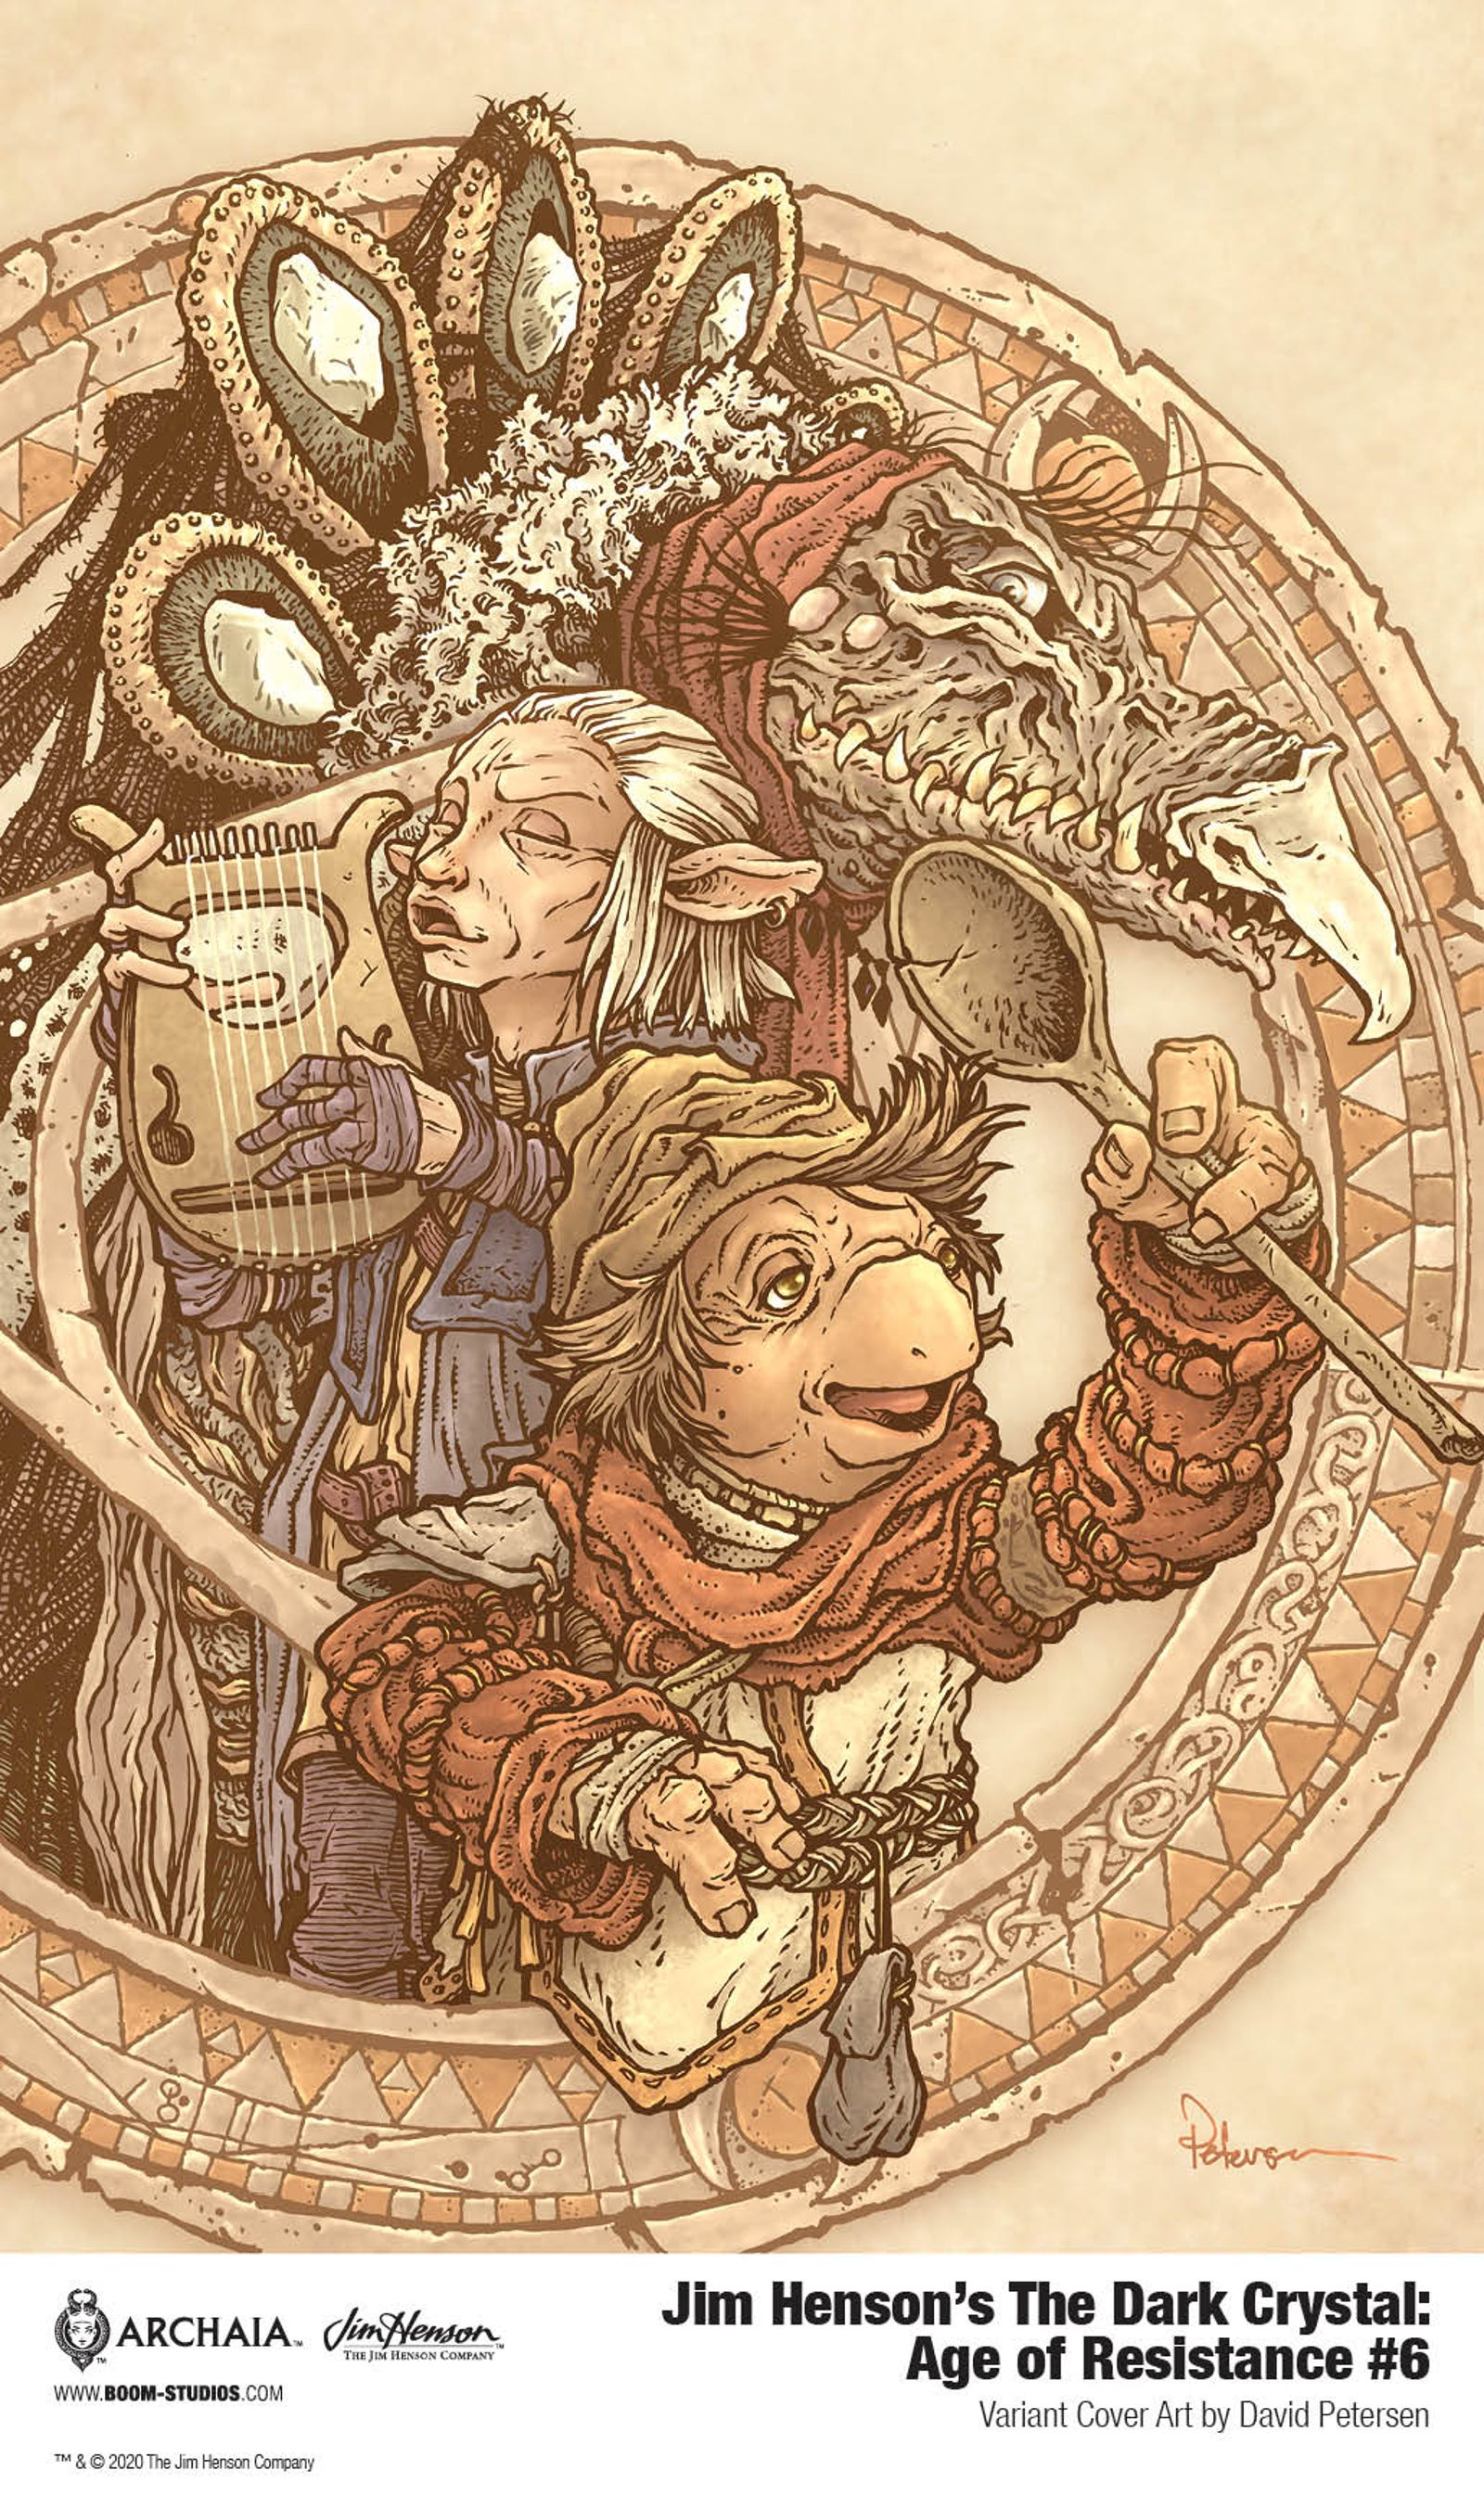 An exclusive look at Mouse Guard creator David Peterson's variant cover for The Dark Crystal: Age of Resistance #6.